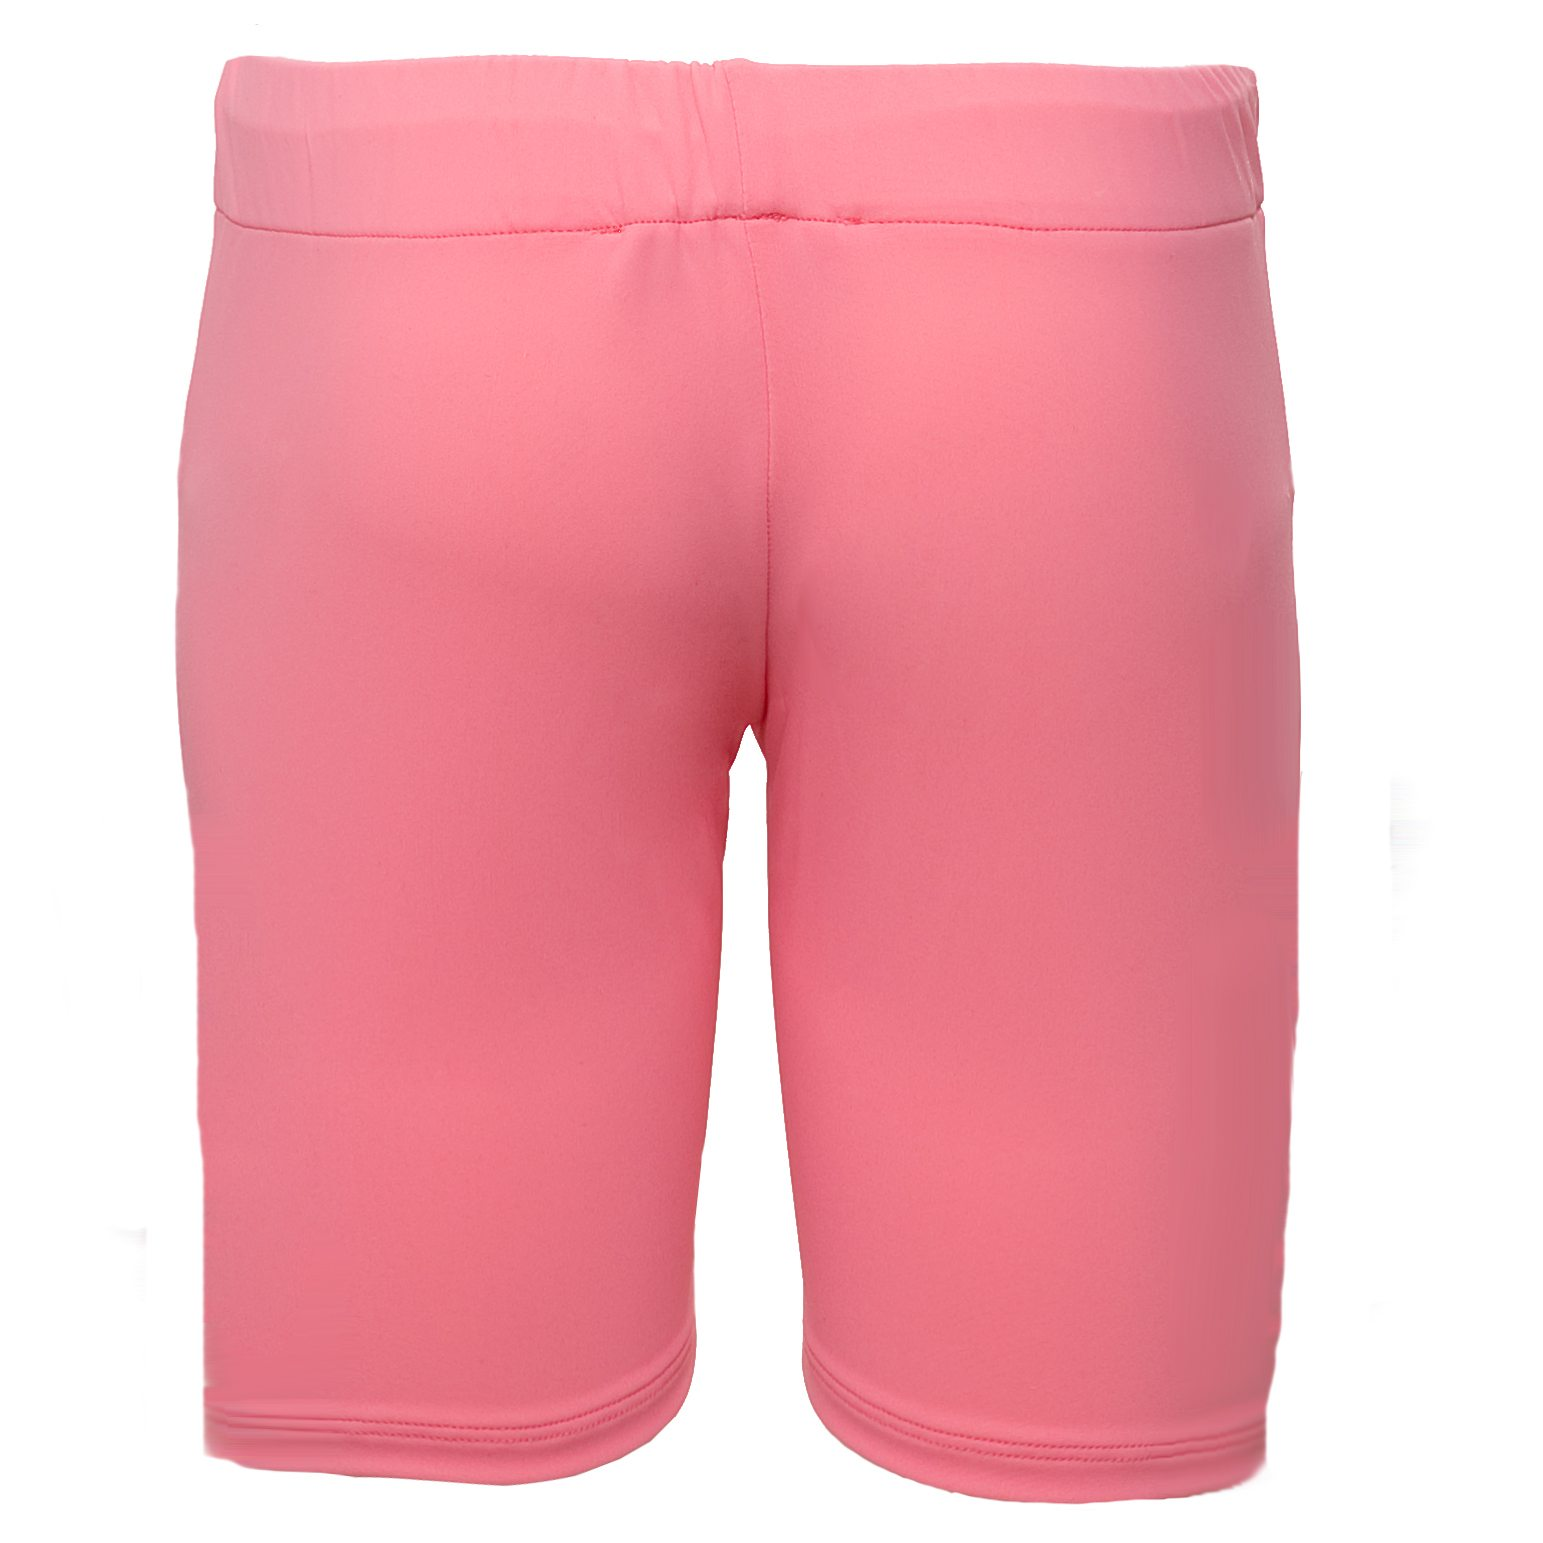 Petit Crabe pink watermelon Alex swimshorts for girls. UV sun protective swimwear for kids.